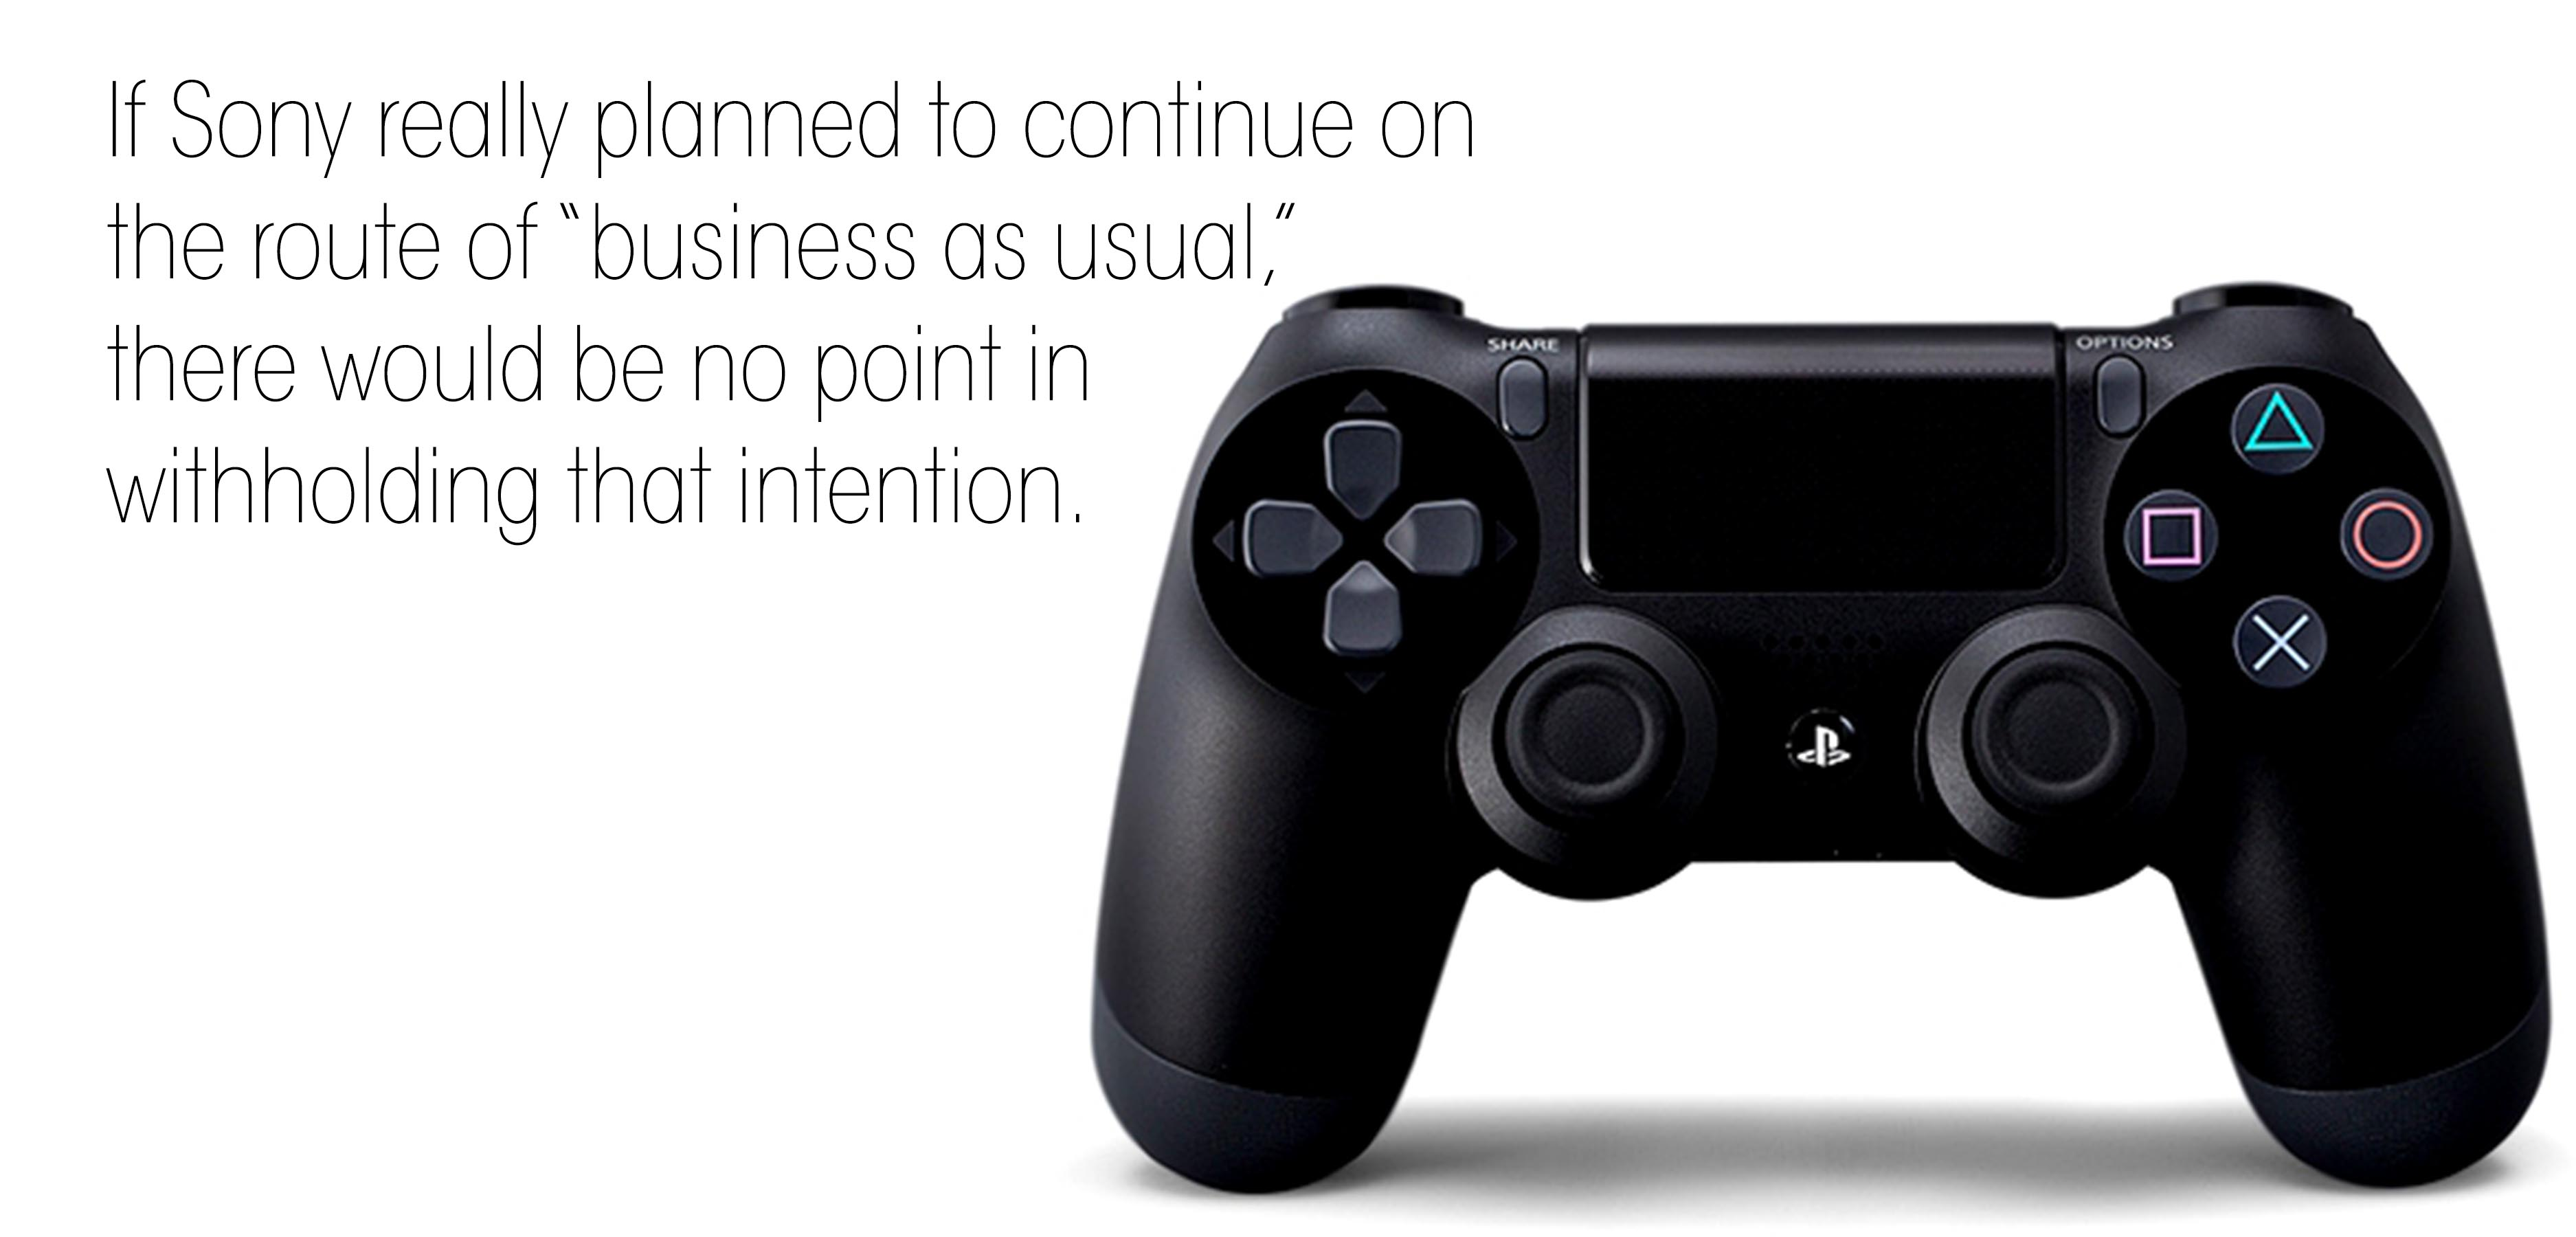 Will Sony Side With The Publishers Or With Us?